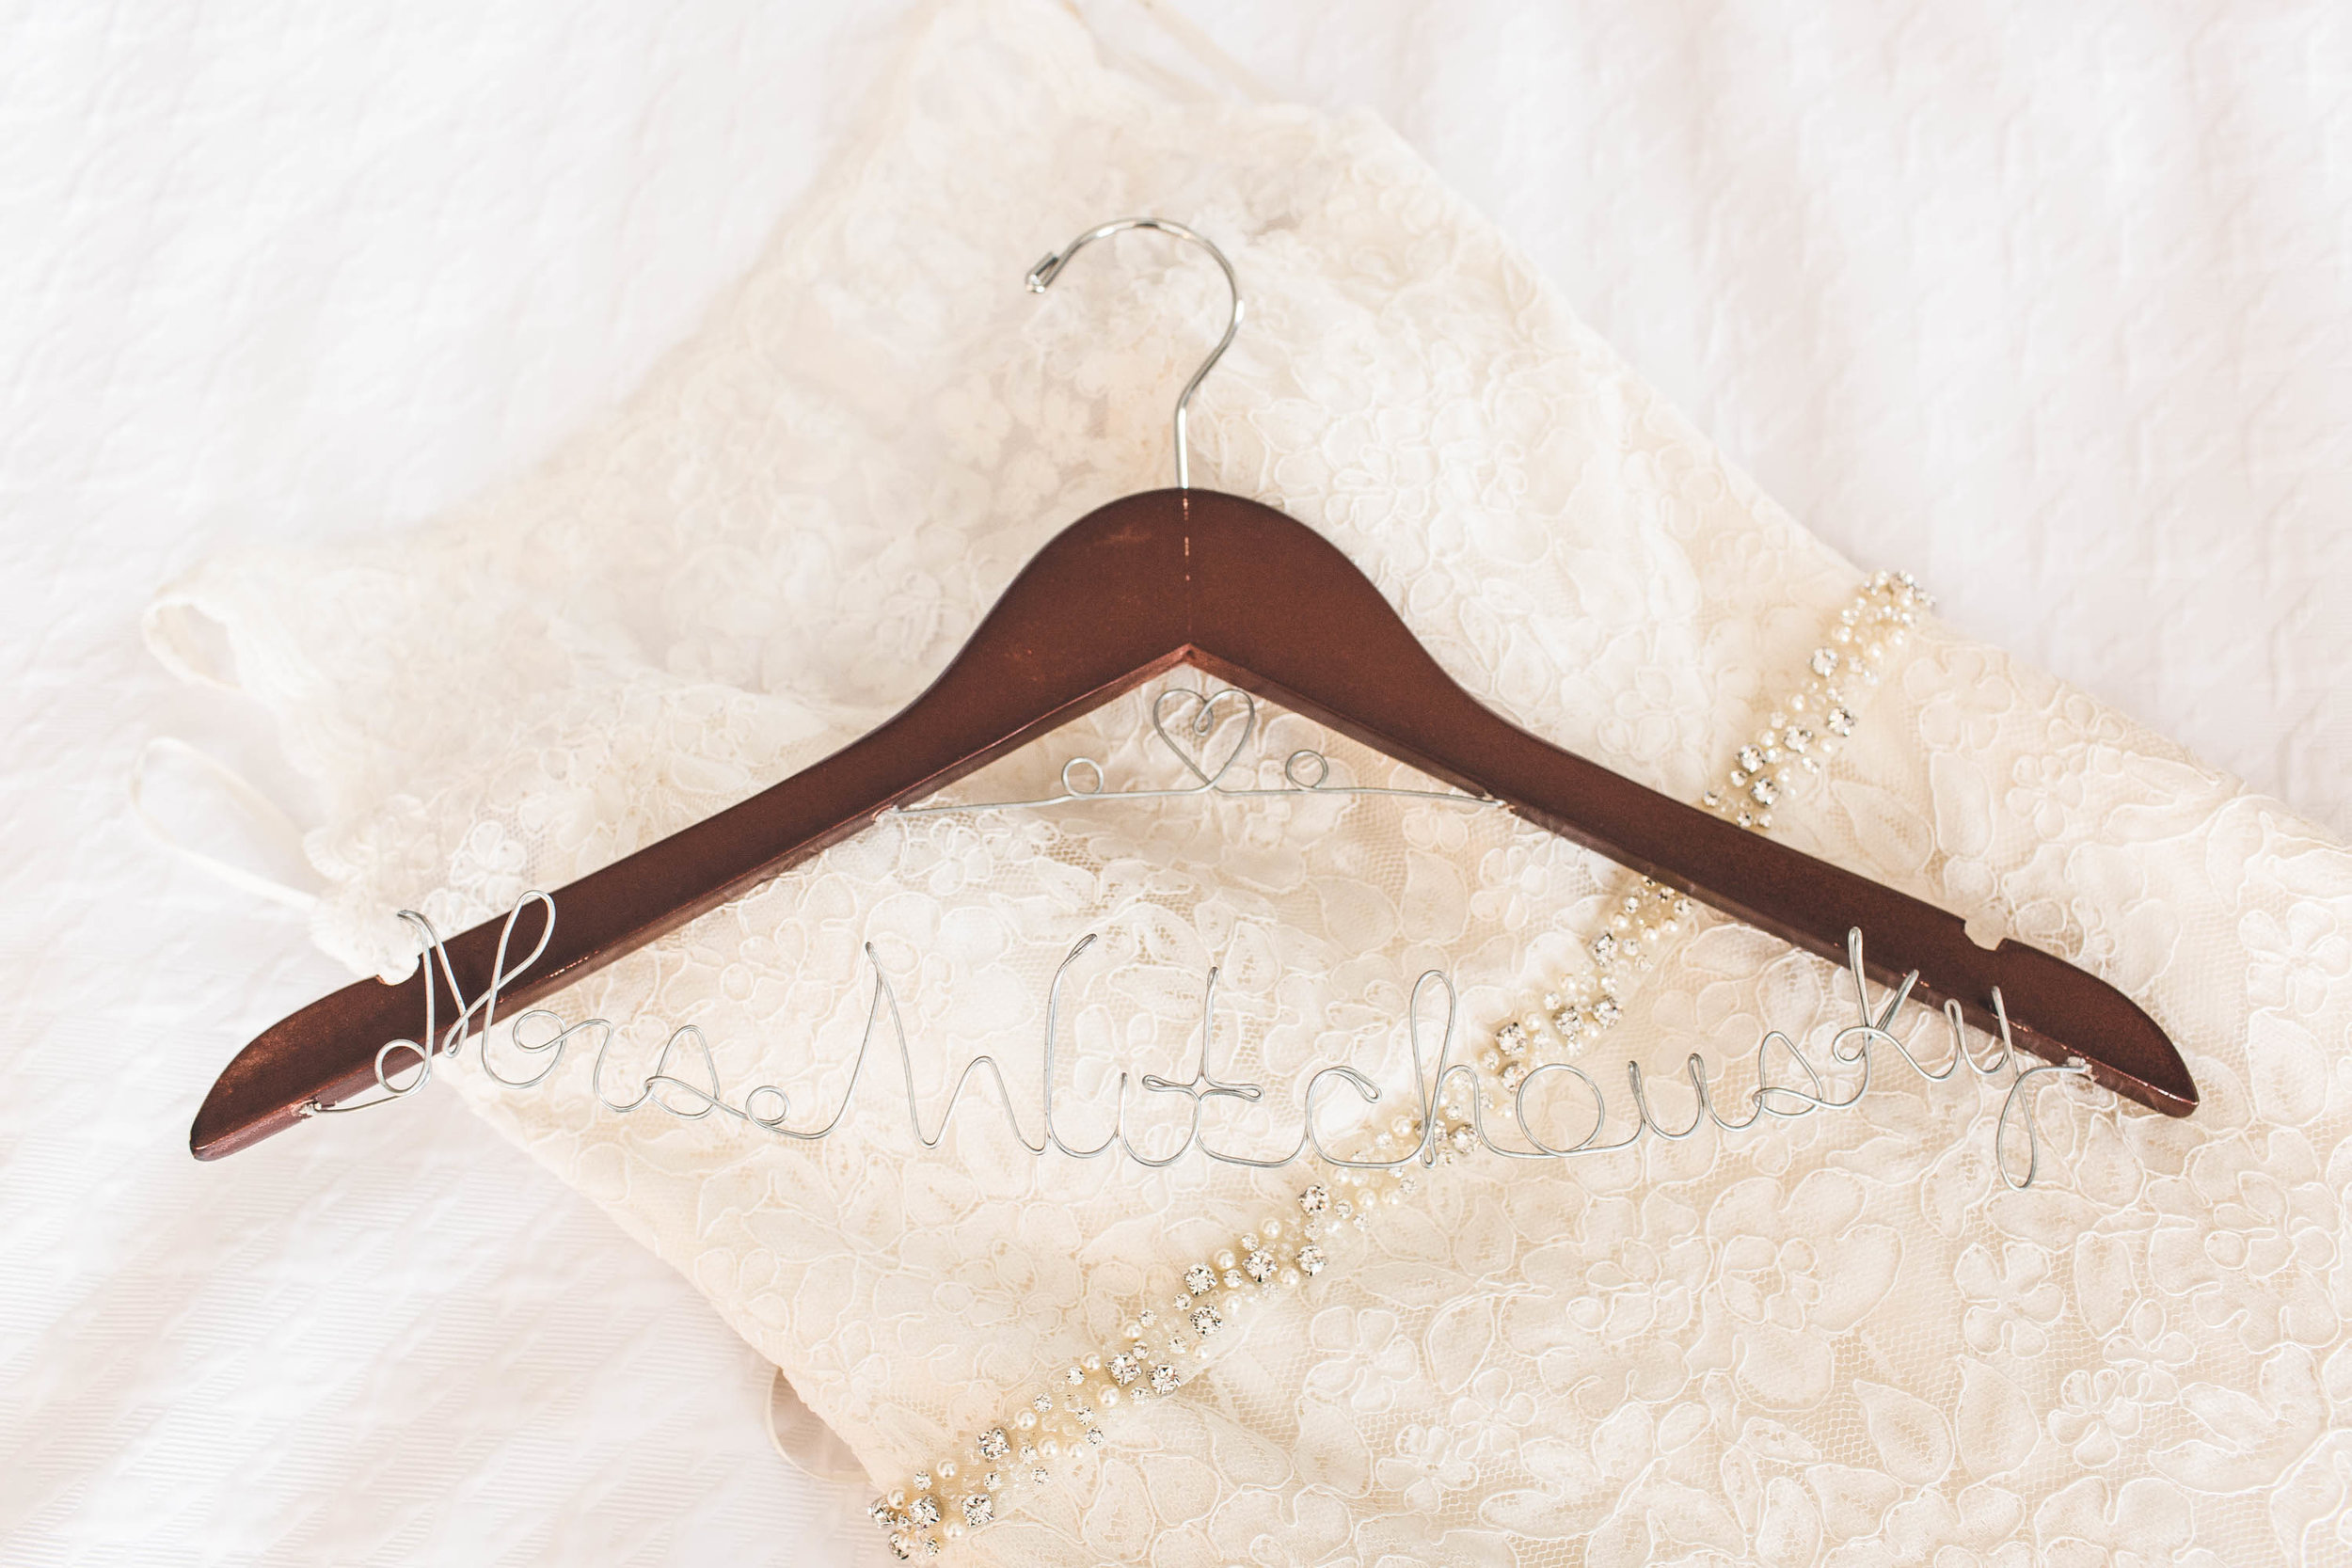 wedding dress and hanger with last name